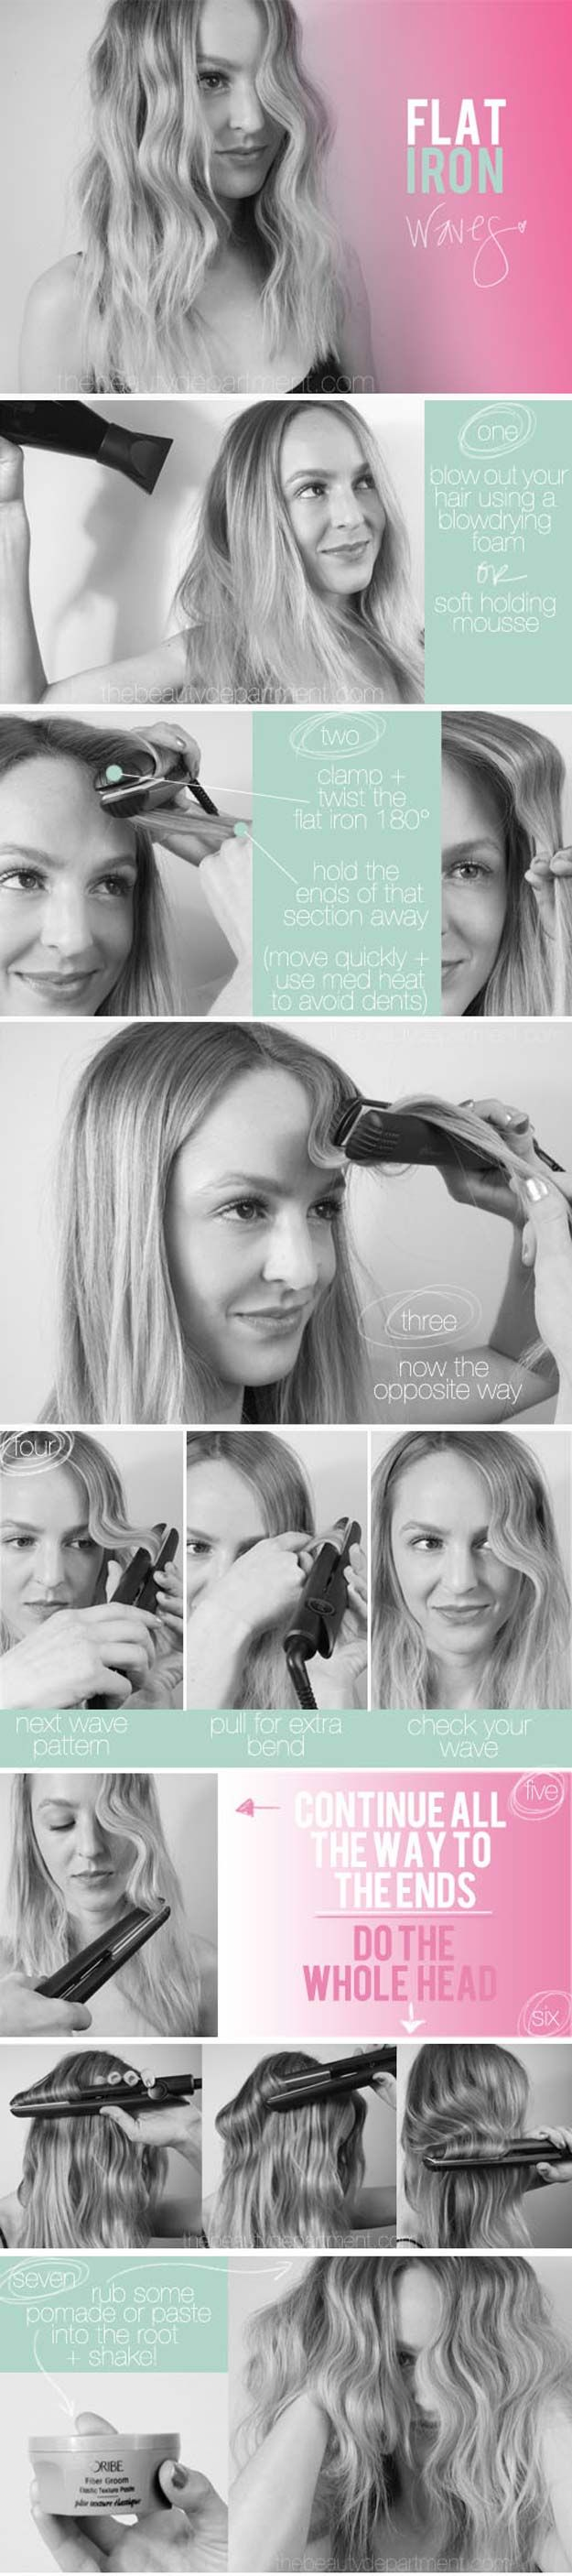 Hair Straightening Tutorials -Tame Your Curly Hair - Flat Iron Waves -Looking Fo...